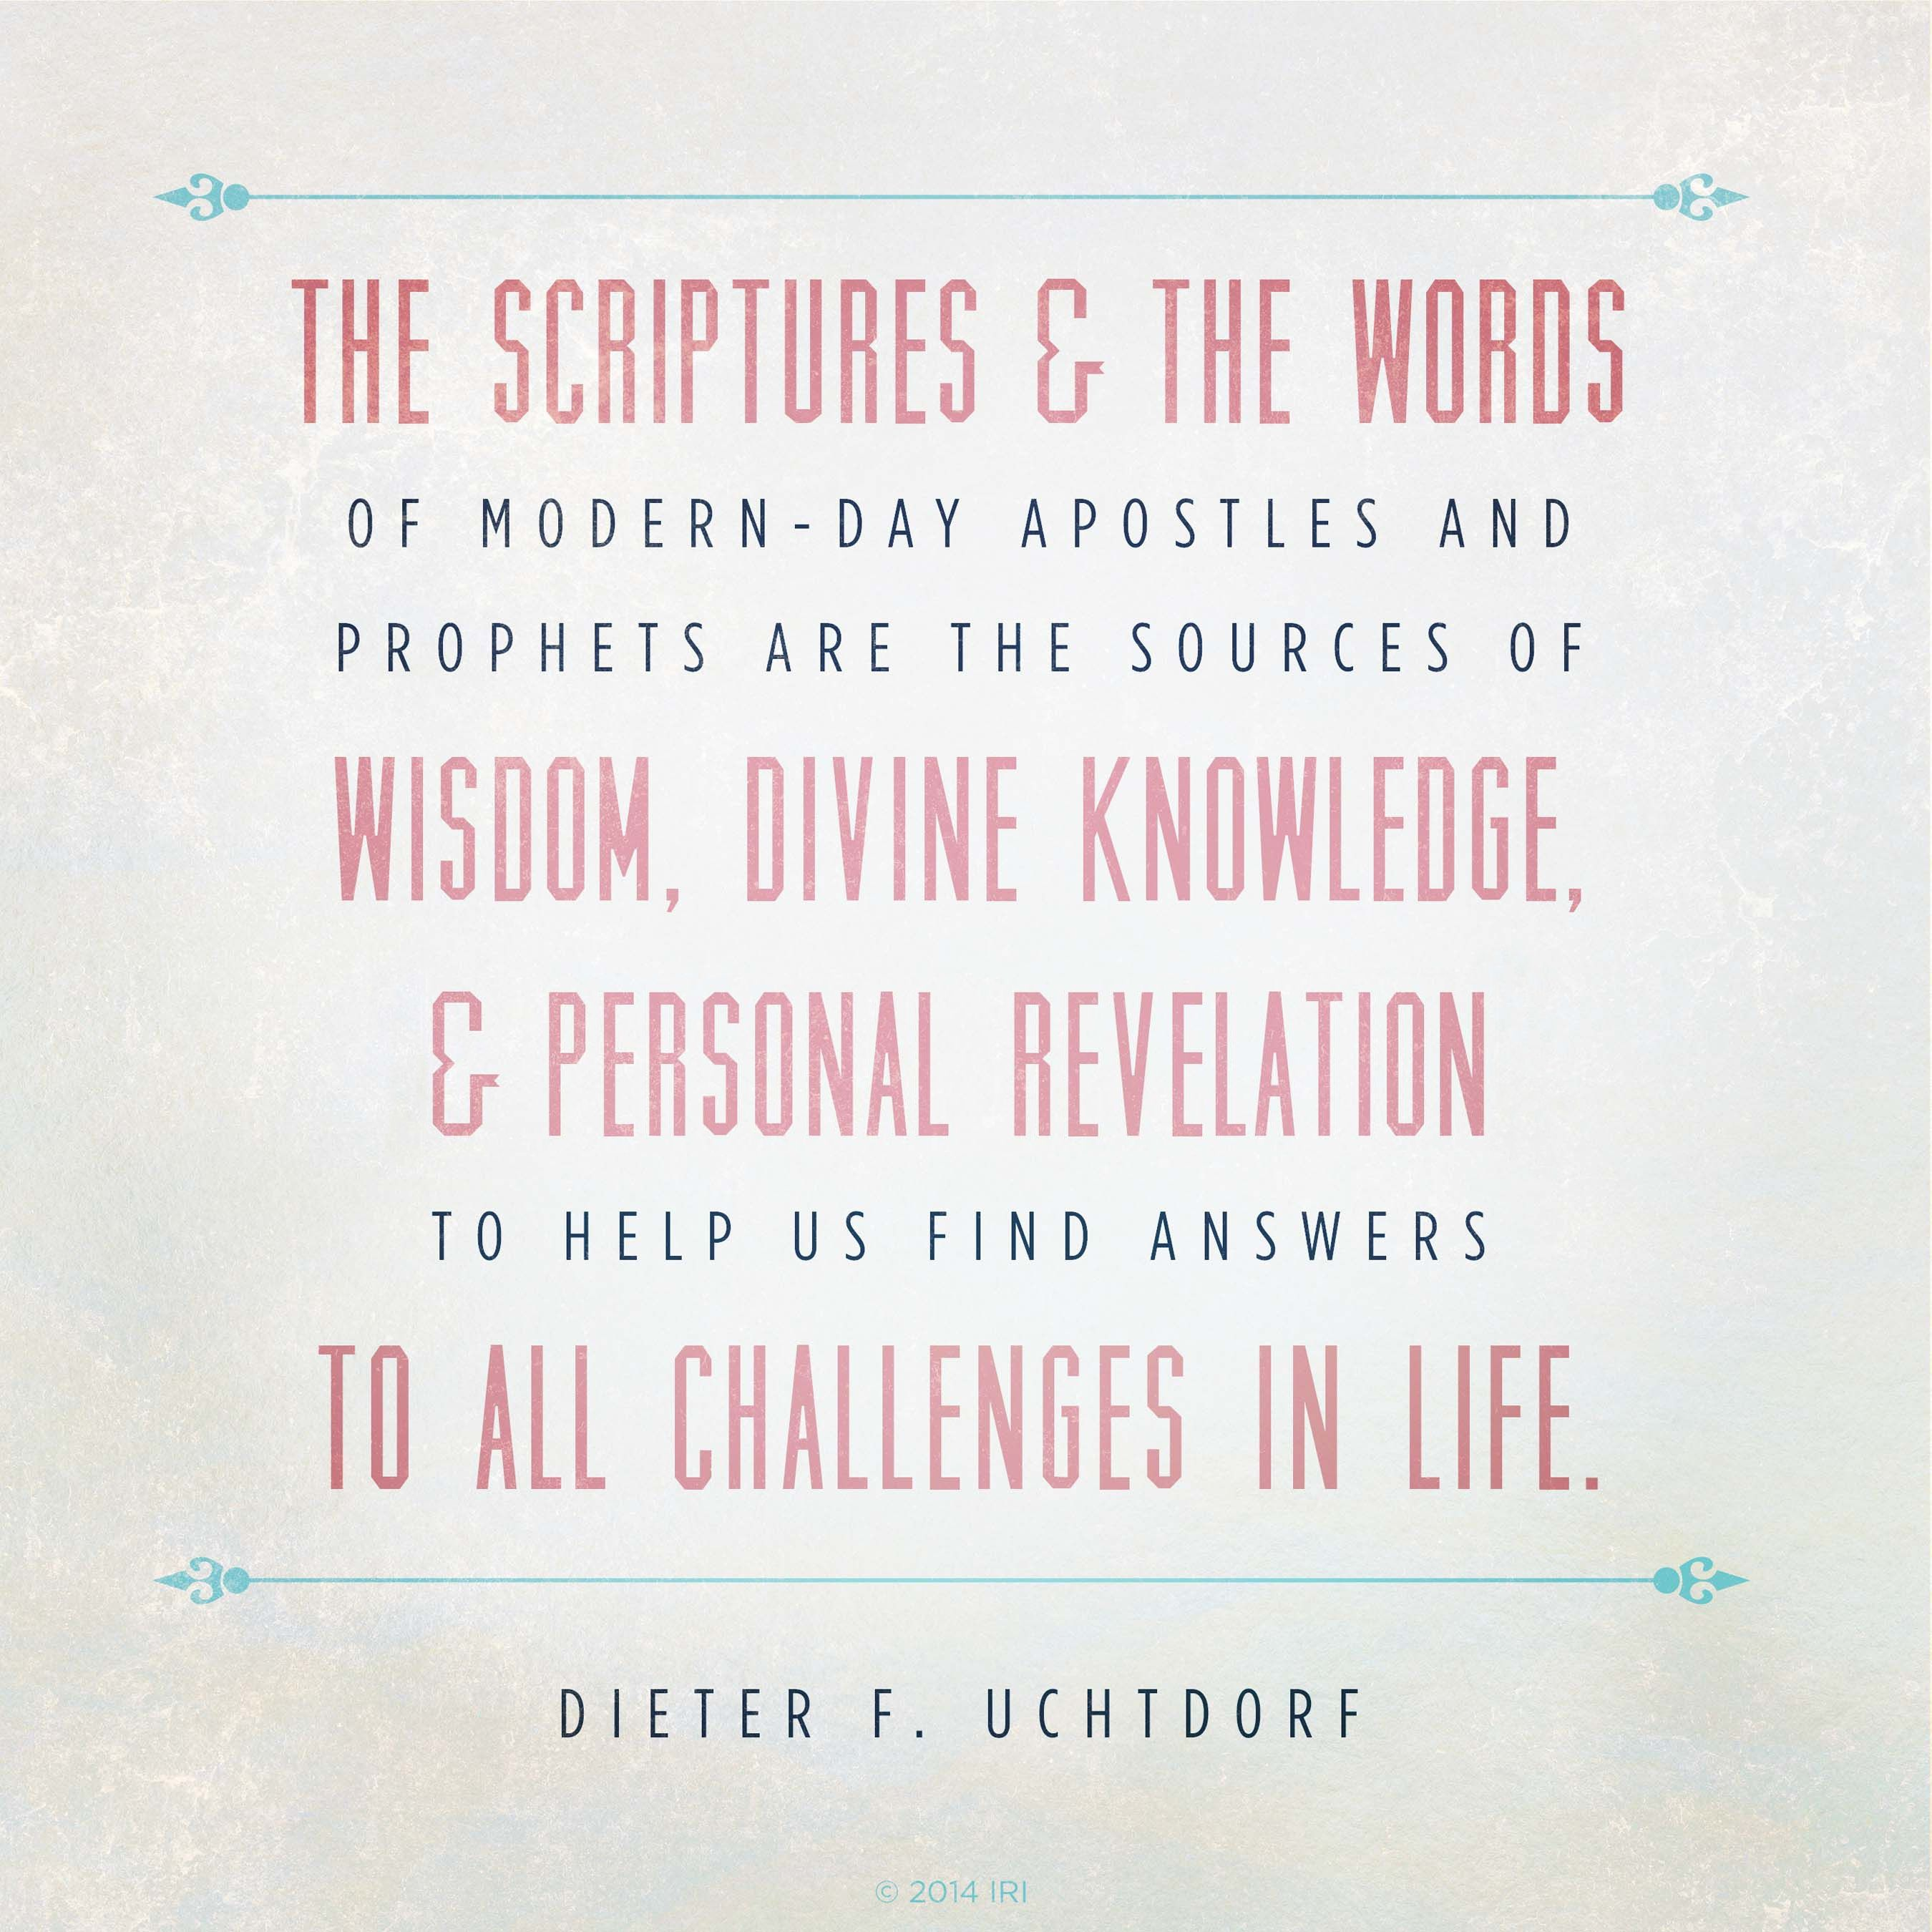 """""""The scriptures and the words of modern-day apostles and prophets are the sources of wisdom, divine knowledge, and personal revelation to help us find answers to all challenges in life.""""—President Dieter F. Uchtdorf, """"Two Principles for Any Economy"""""""